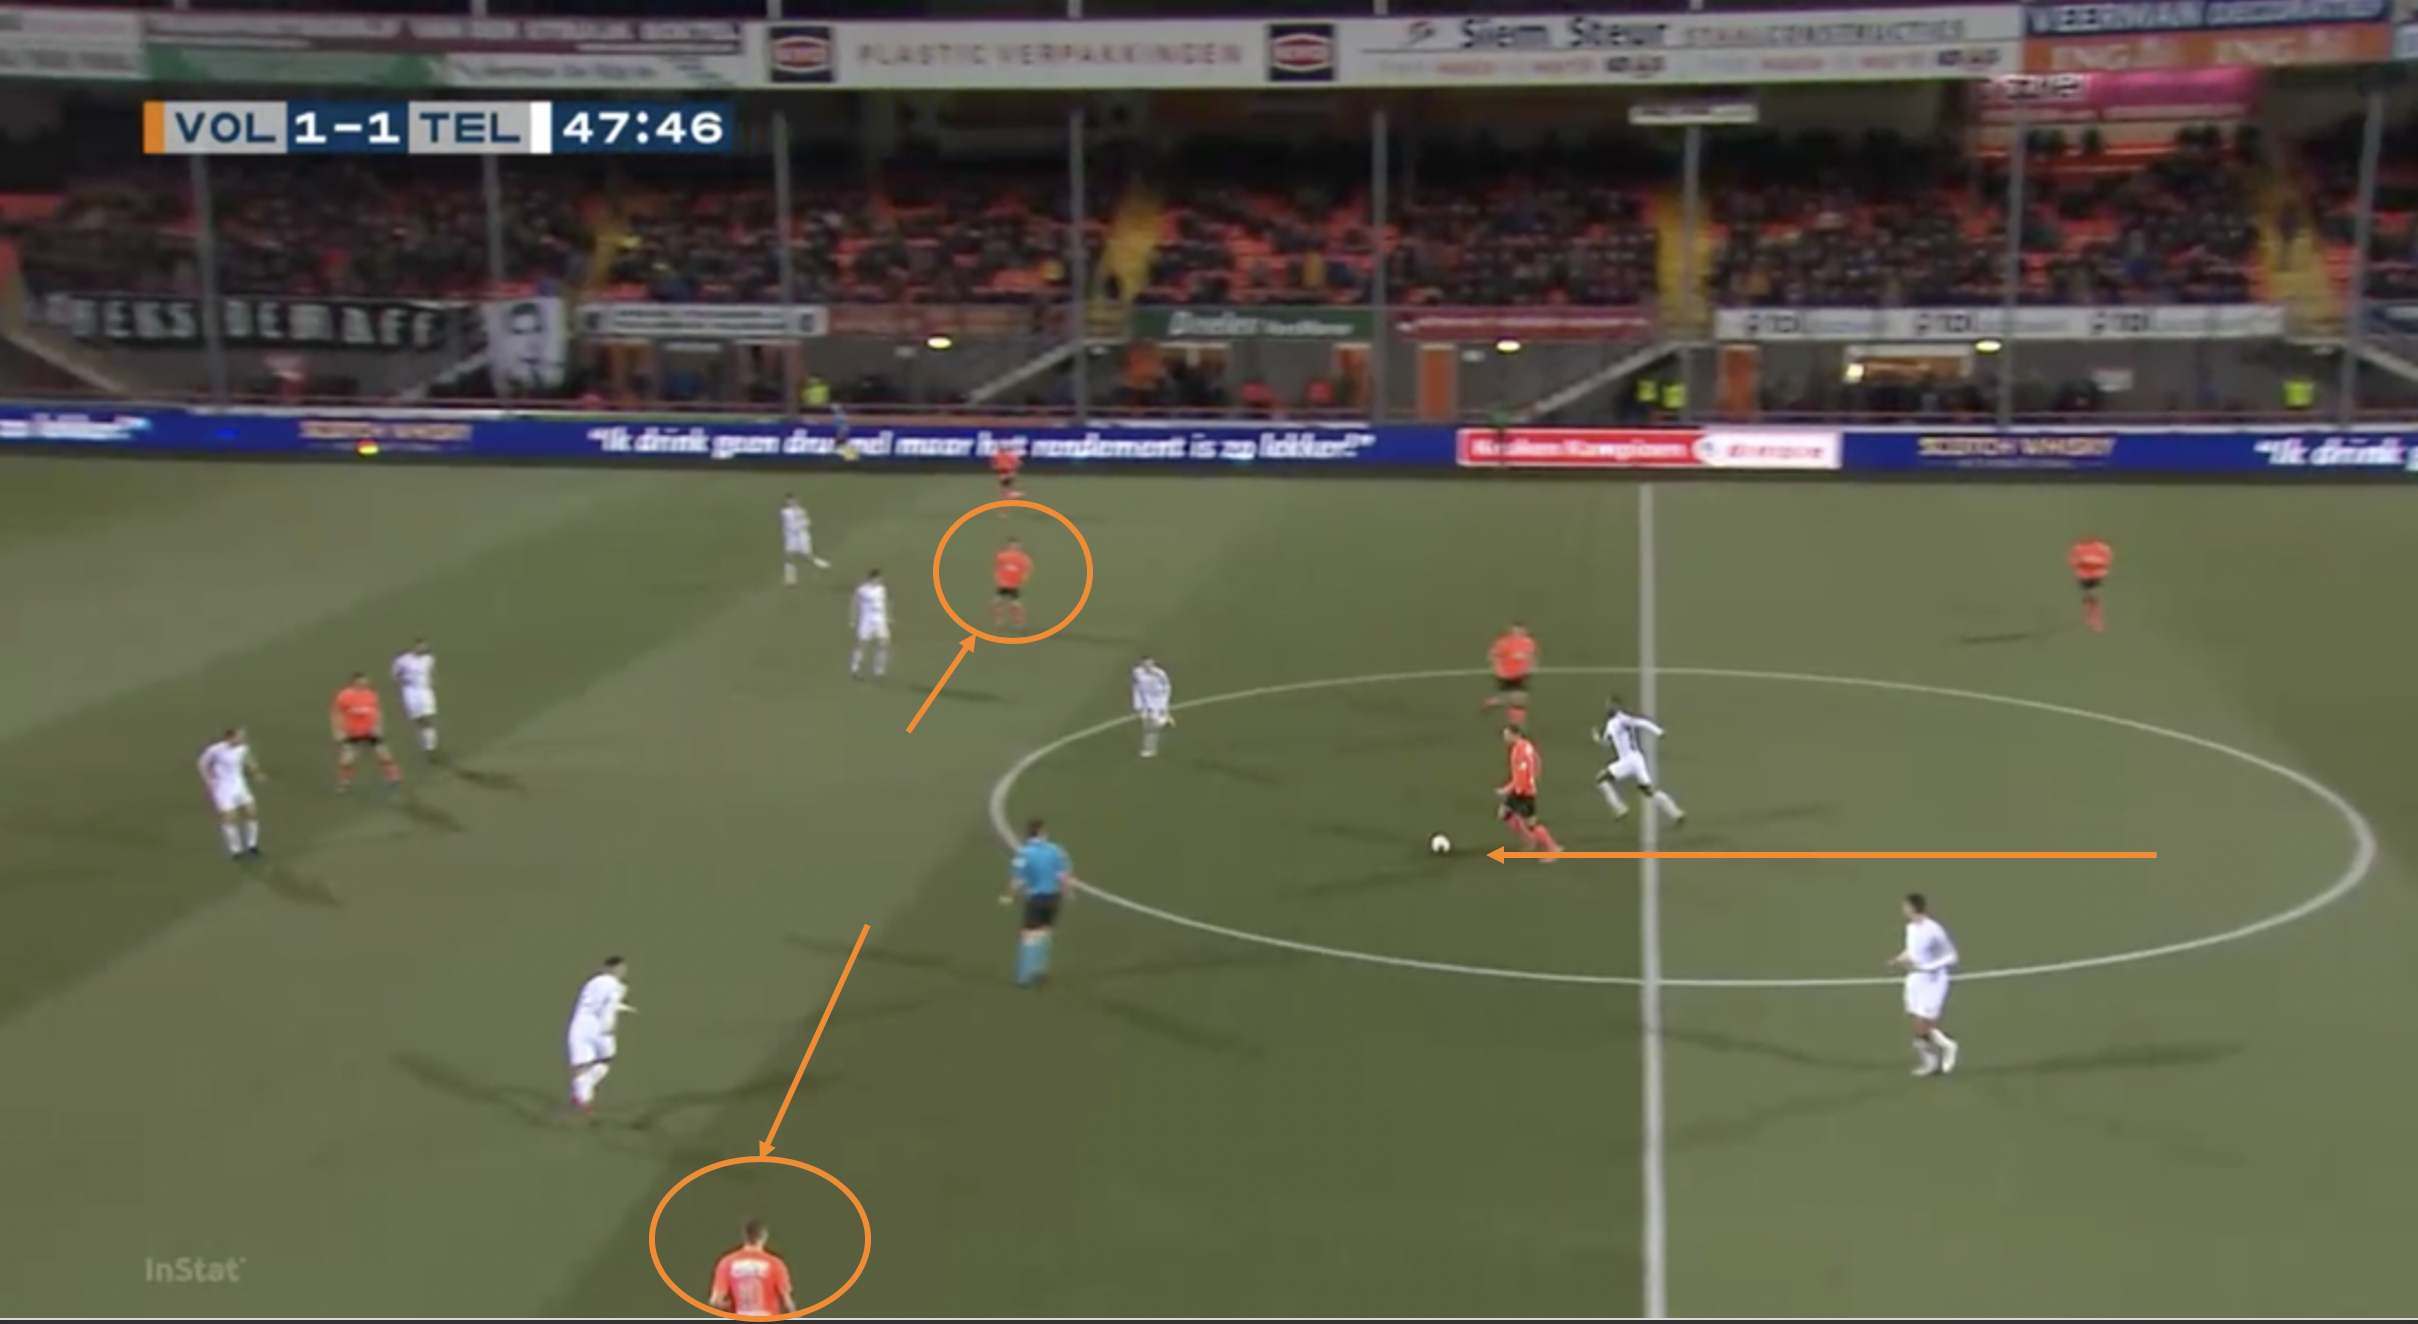 Wim Jonk at Volendam 2019/20 - tactical analysis tactics